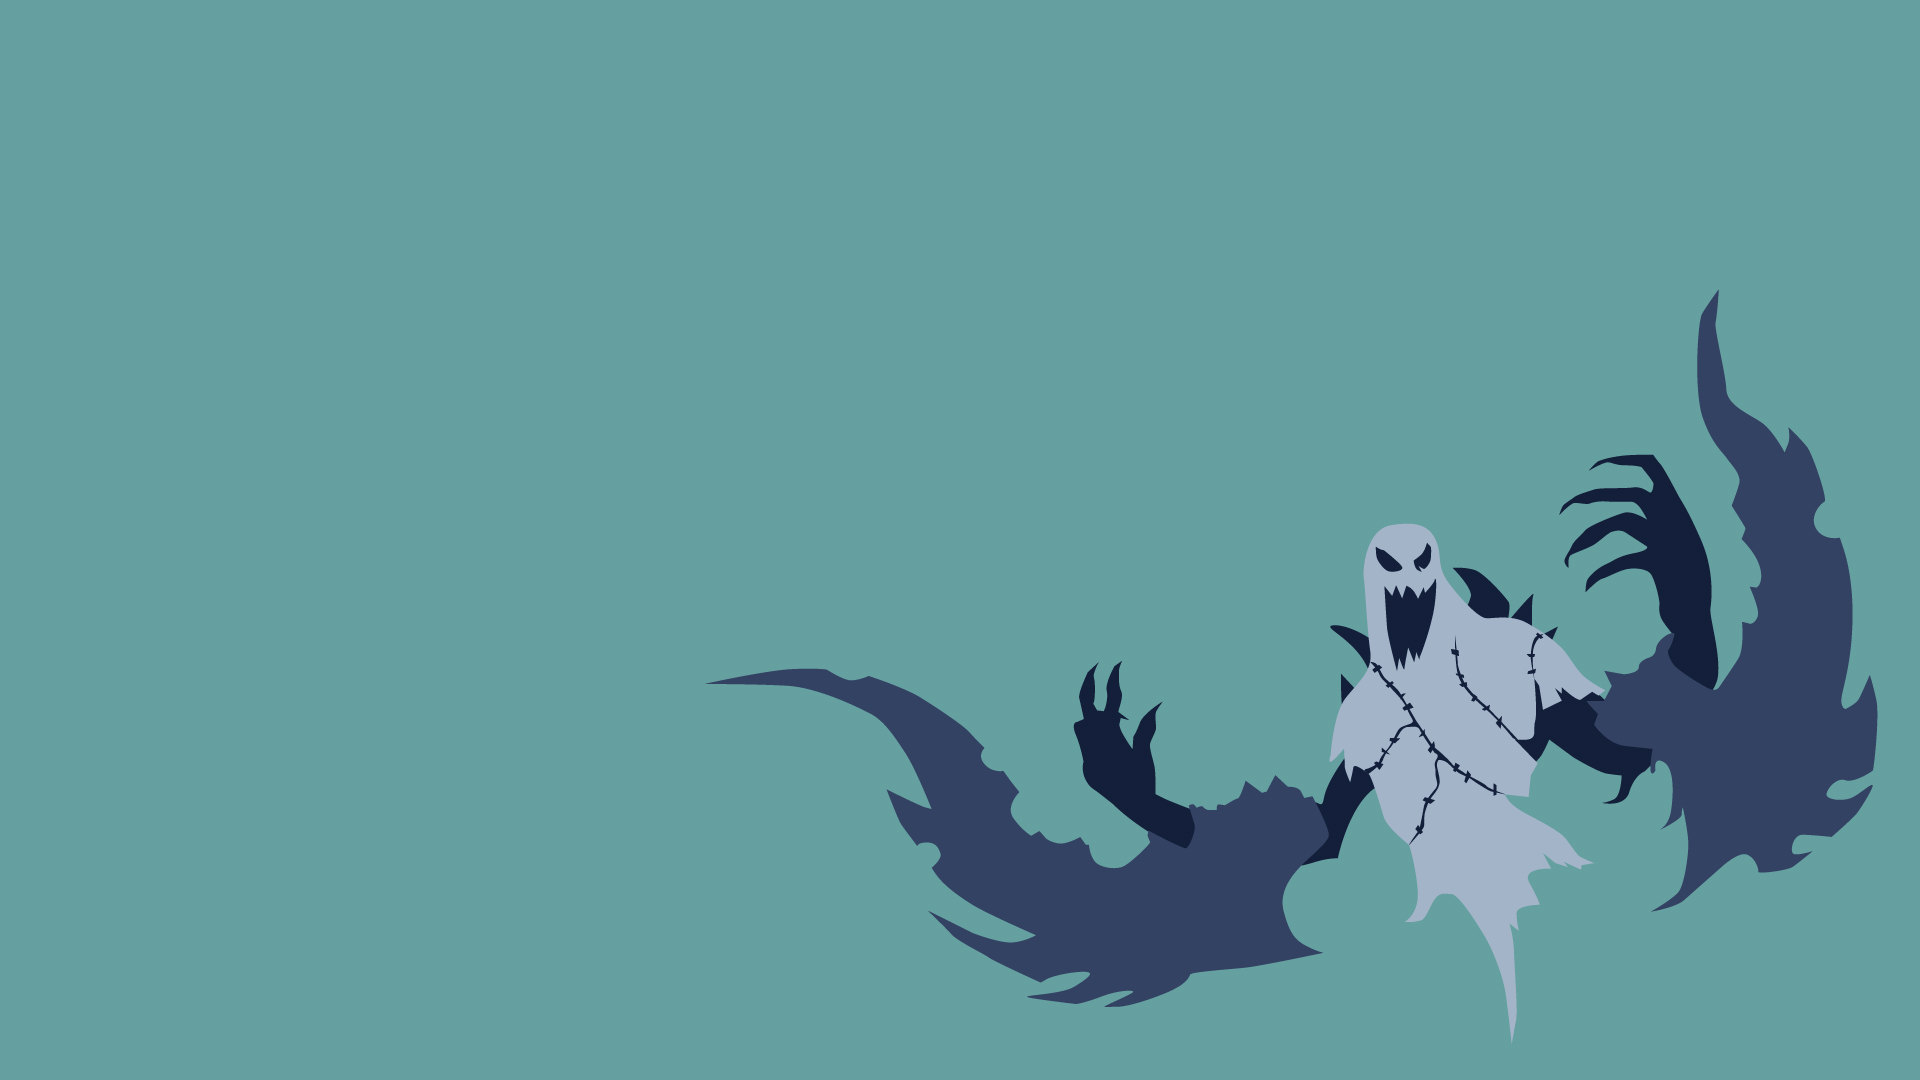 Haunted Nocturne Minimalistic - LoLWallpapers